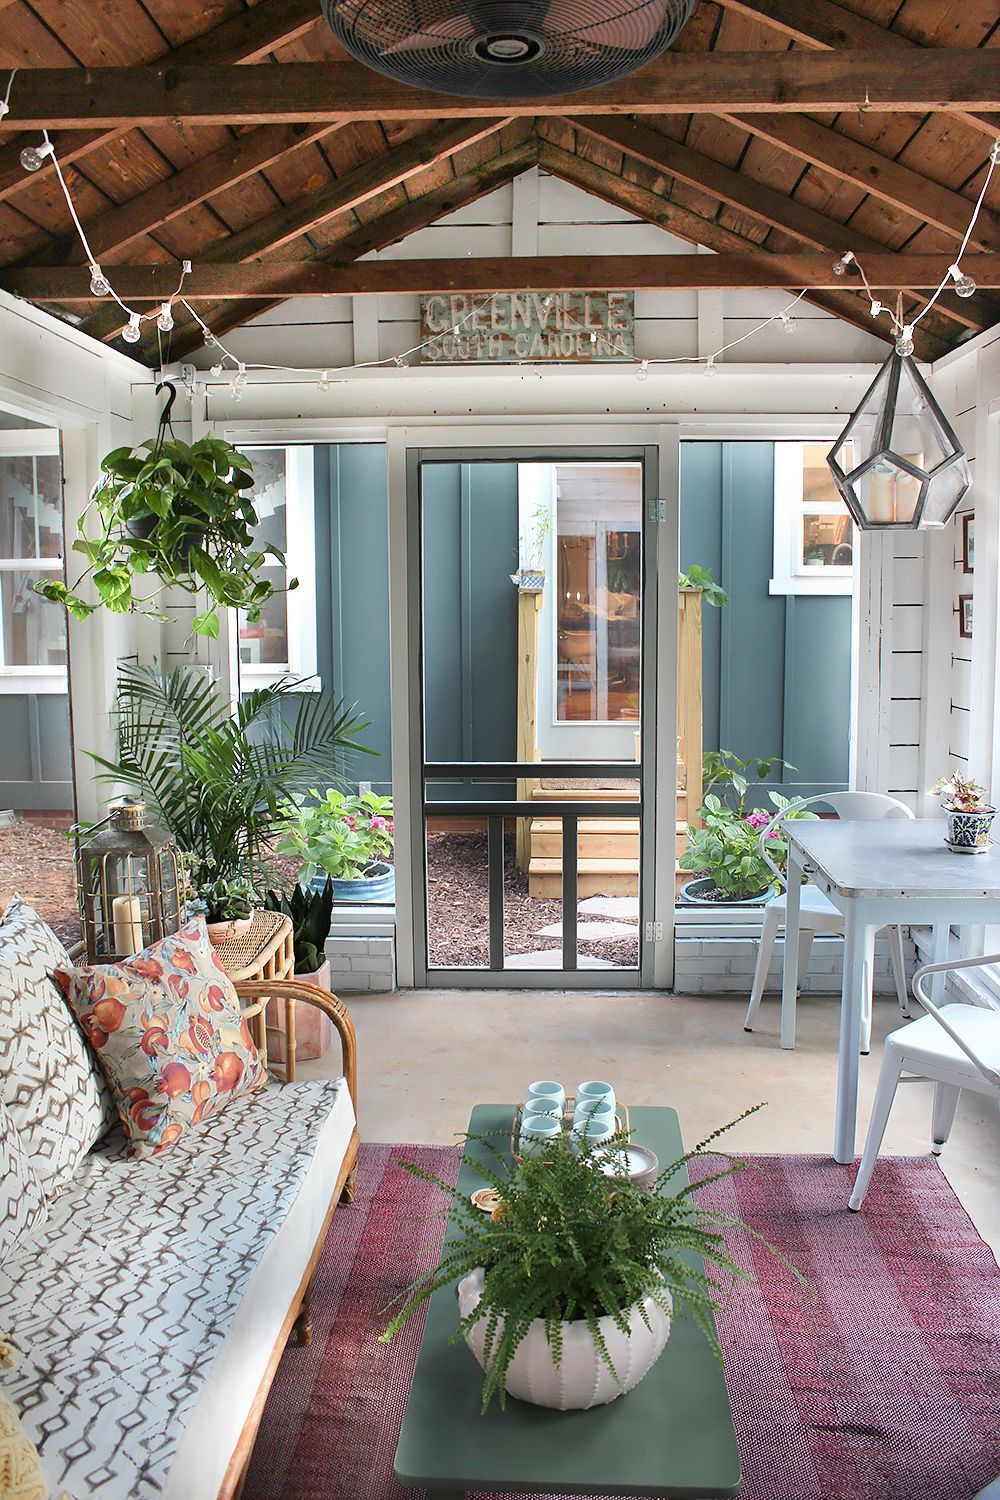 Home Decor Ideas On A Budget Porches Awesome 16 Sunroom Decor Ideas Porch Design Sunroom Decorating House With Porch Awesome sunroom design ideas